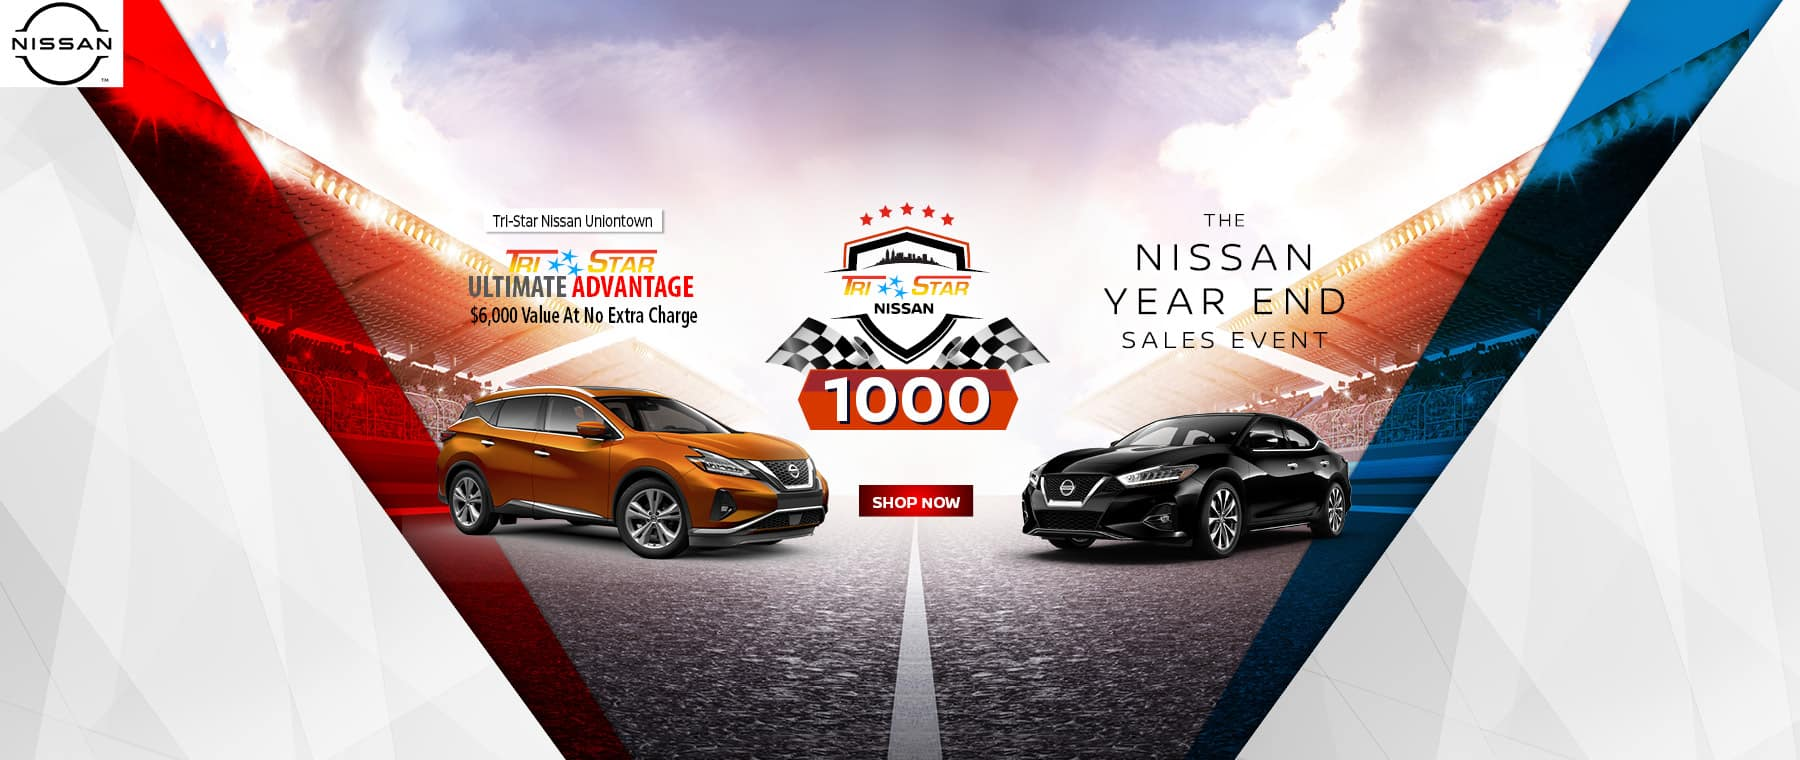 The Nissan Year End Sales Event